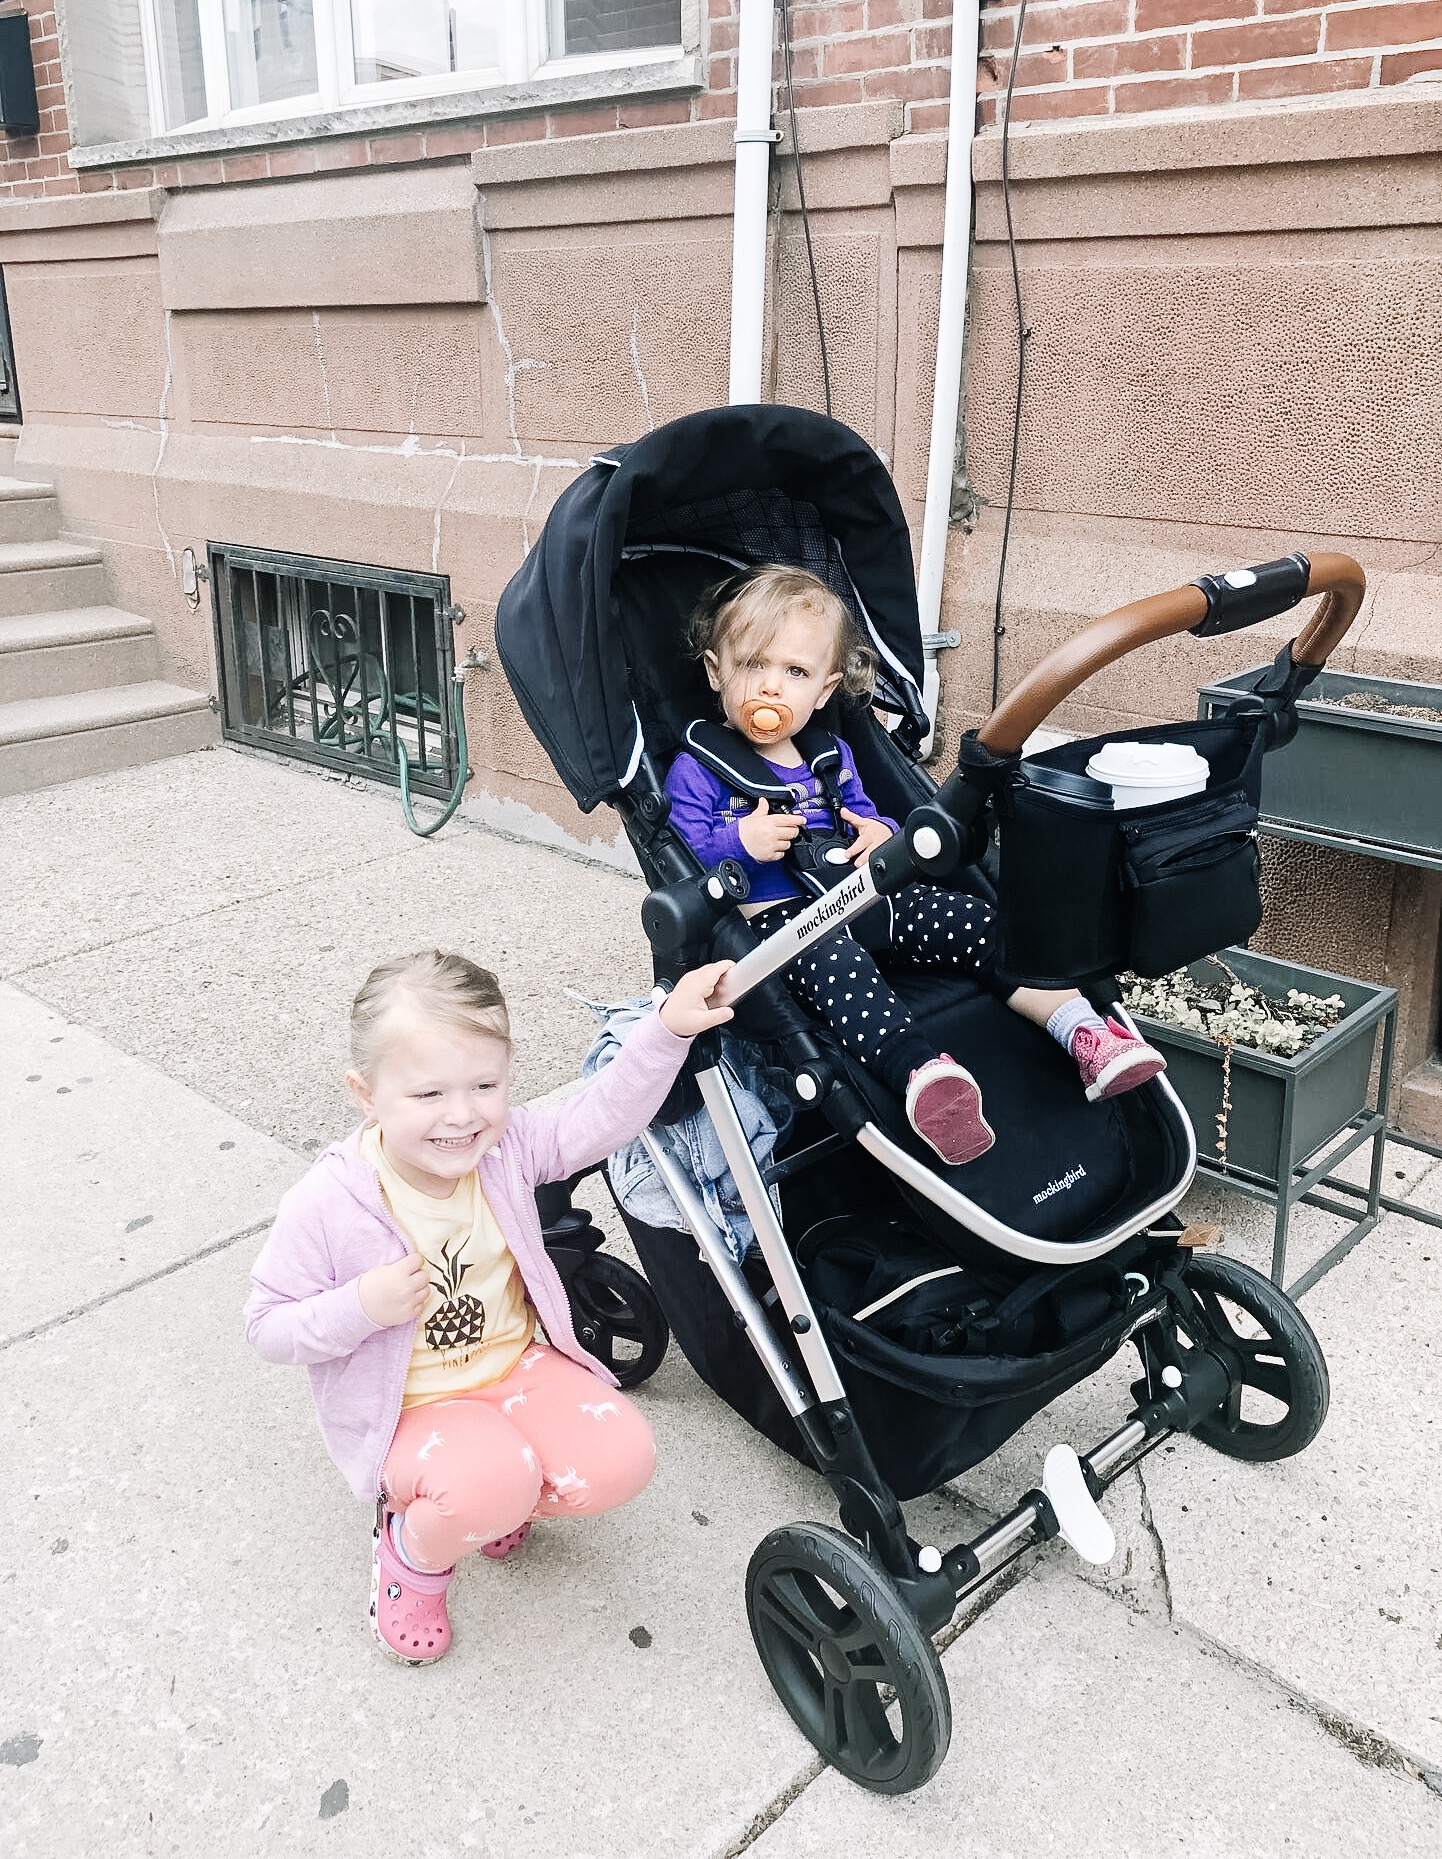 Our new favorite stroller, Mockingbird. It's cute, city friendly, and inexpensive.